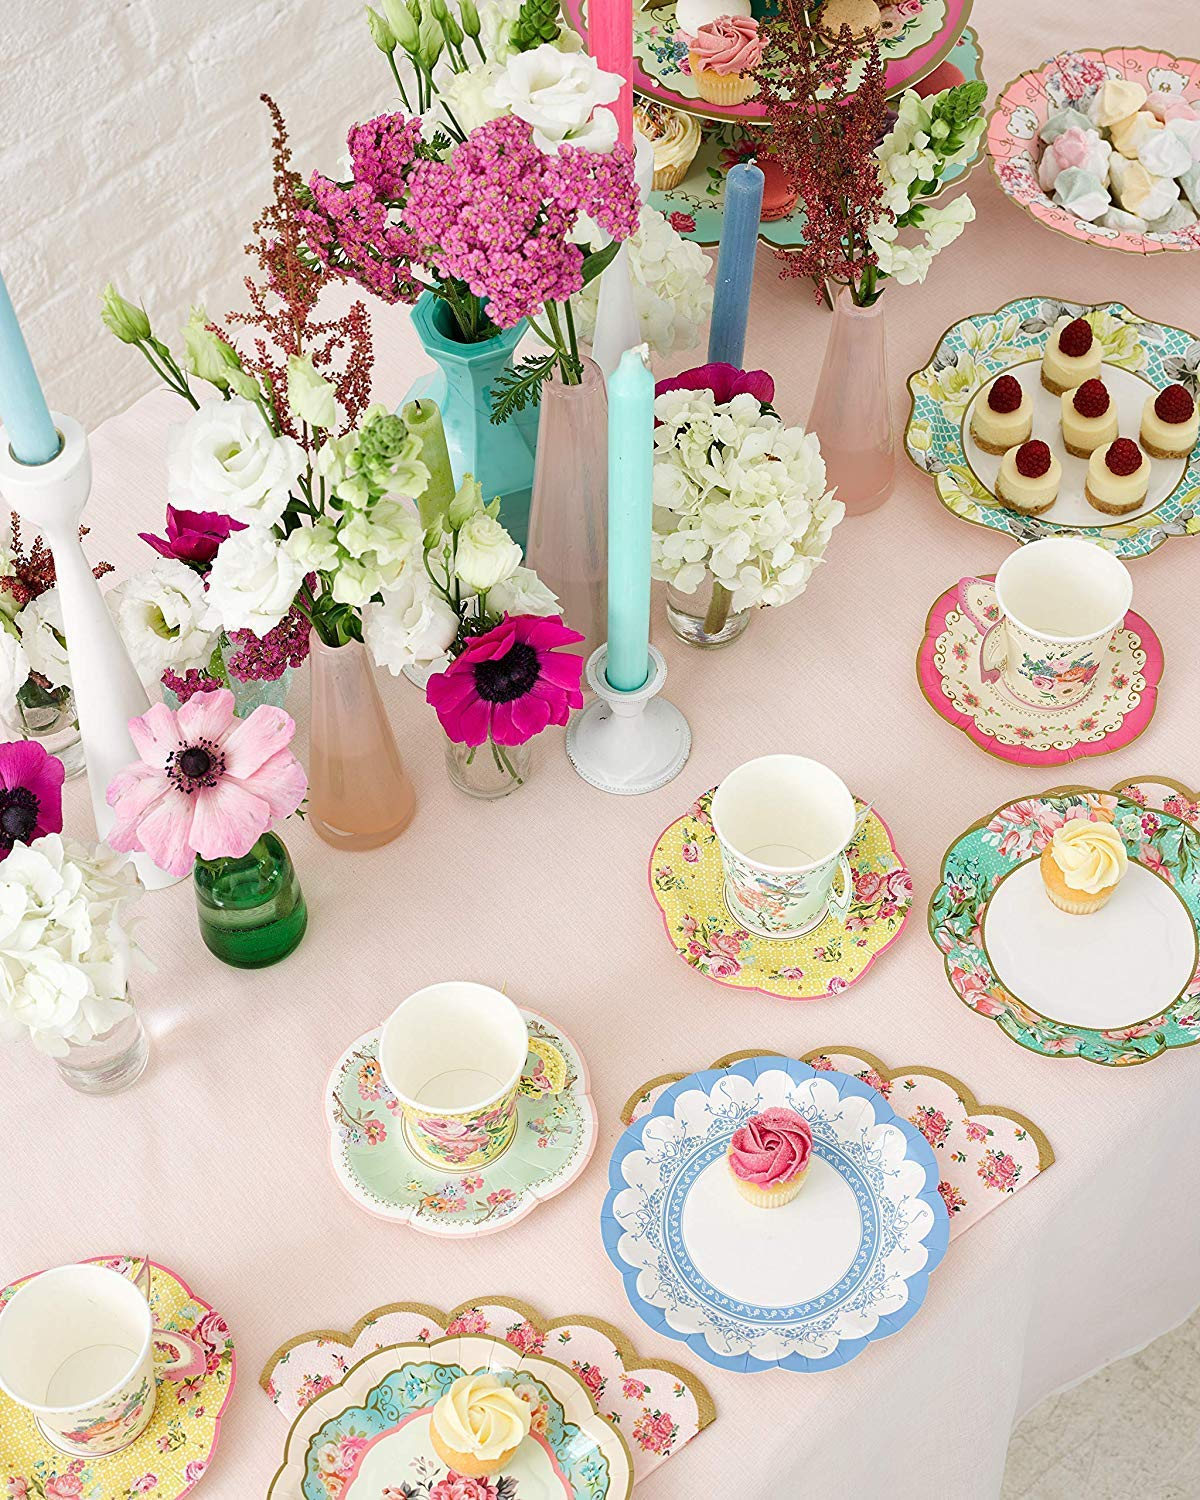 Talking Tables Vintage Floral Tea Party Supplies | Scalloped Paper Plates, Napkins, Tea Cups and Saucer Sets | Also Great for Wedding Parties, Bridal Shower, Baby Shower and Birthday Party by Talking Tables (Image #3)